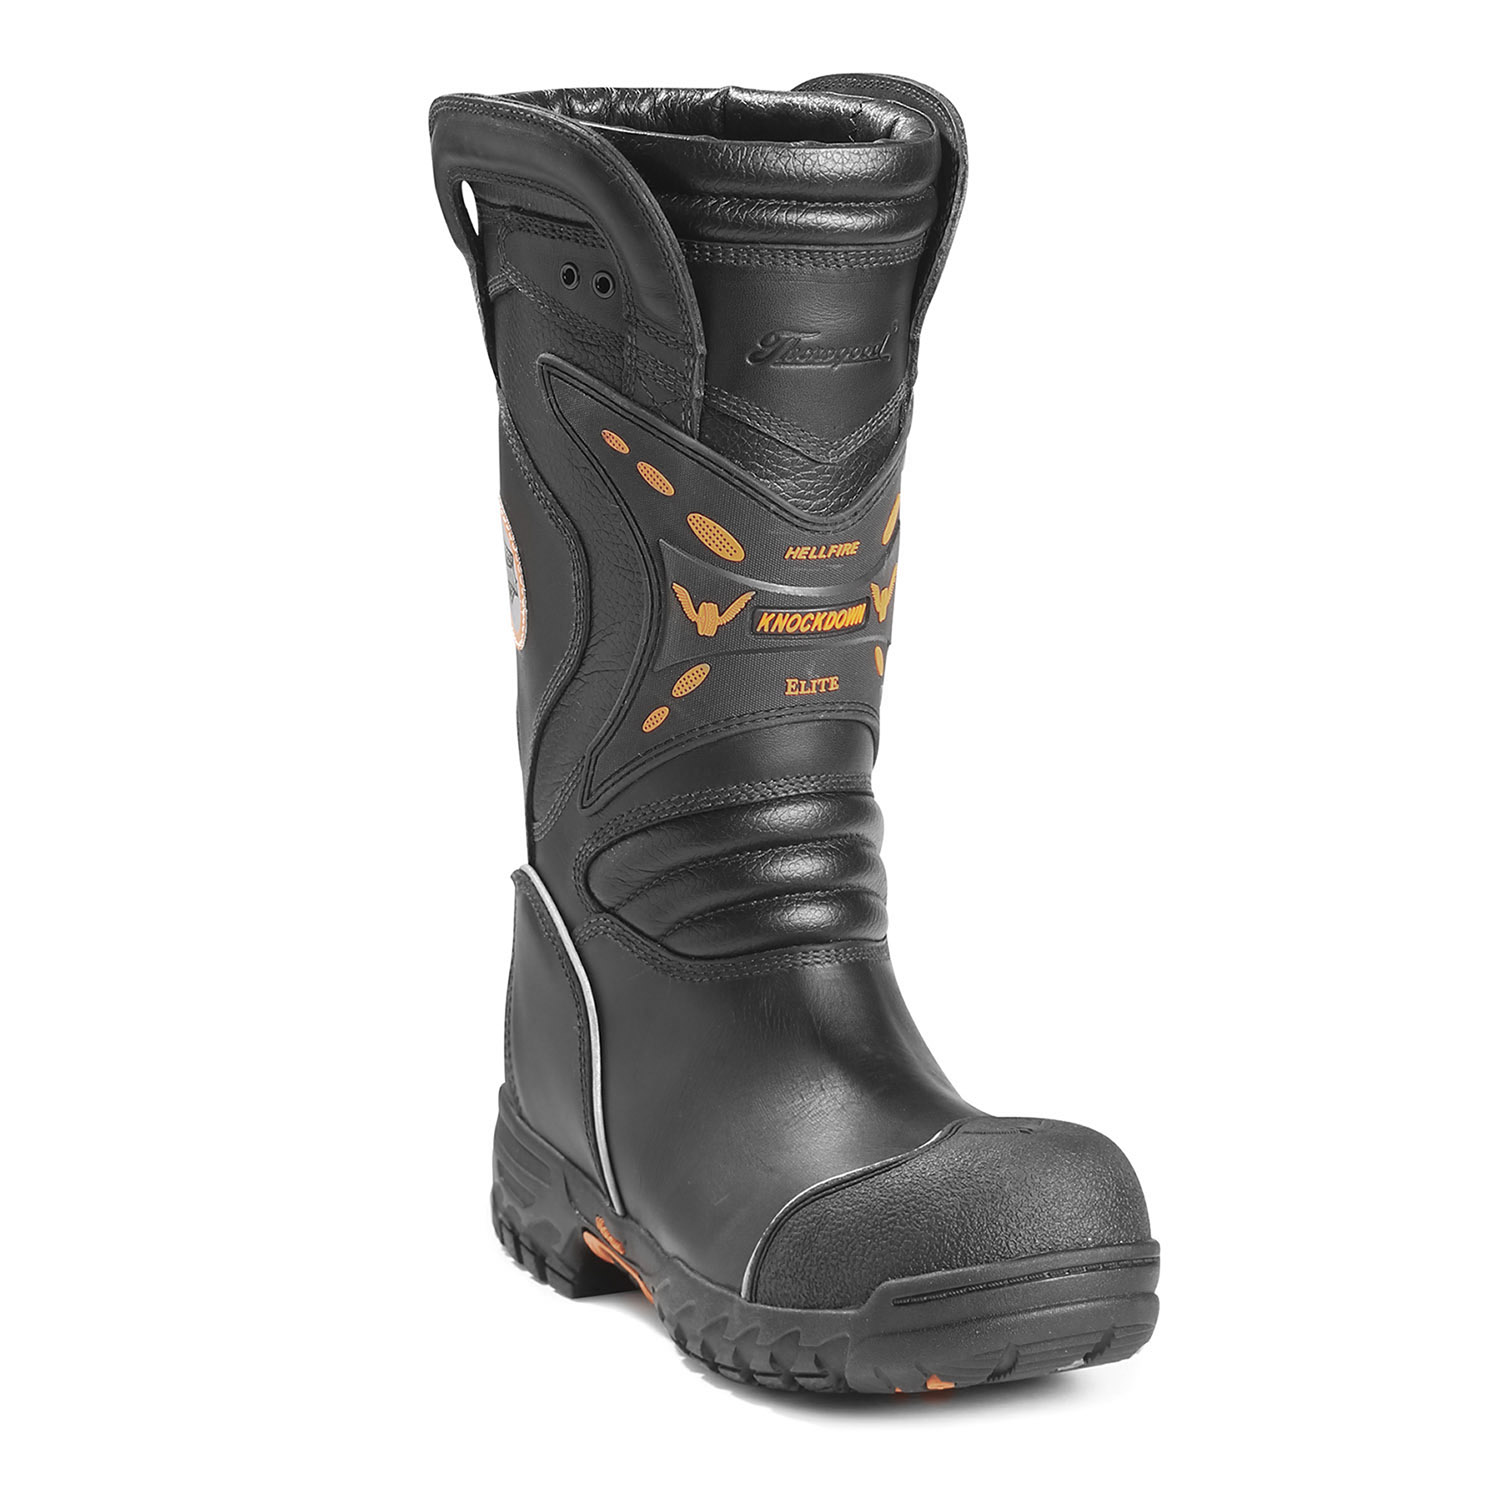 Thorogood Hellfire Knockdown Elite Leather Fire Boot